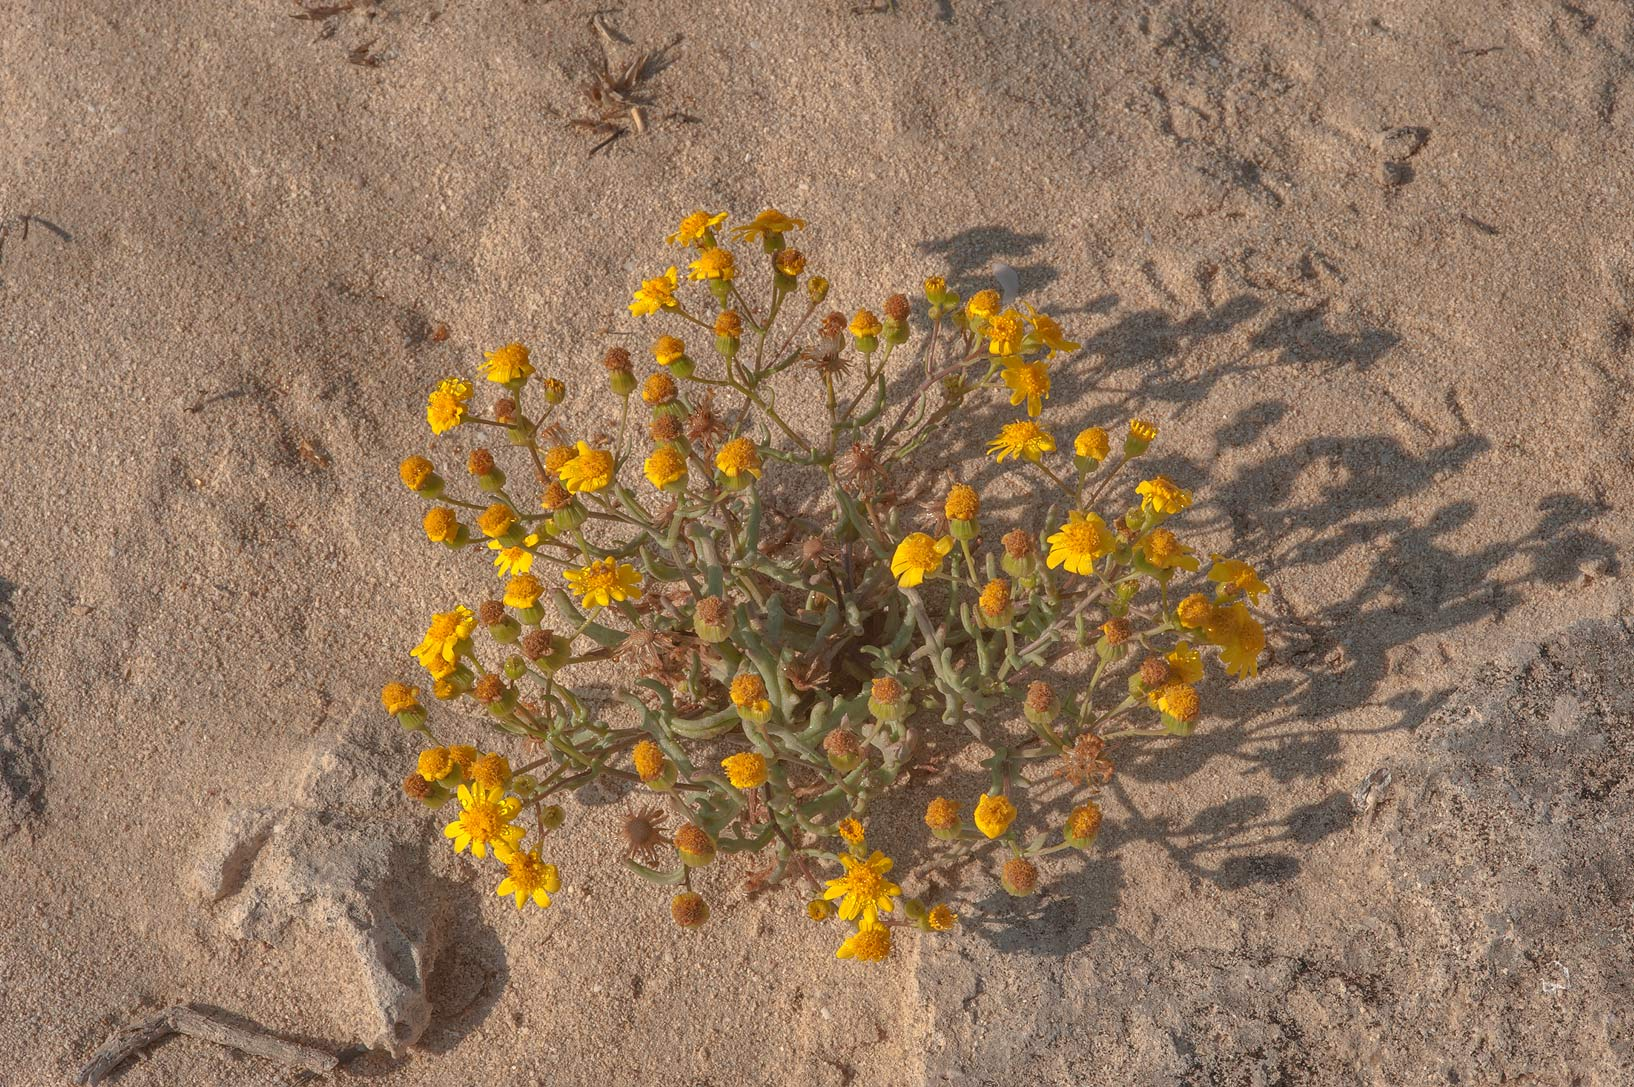 Buck's horn groundsel (Senecio glaucus, mureer...of Jebel Fuwairit. Northern Qatar